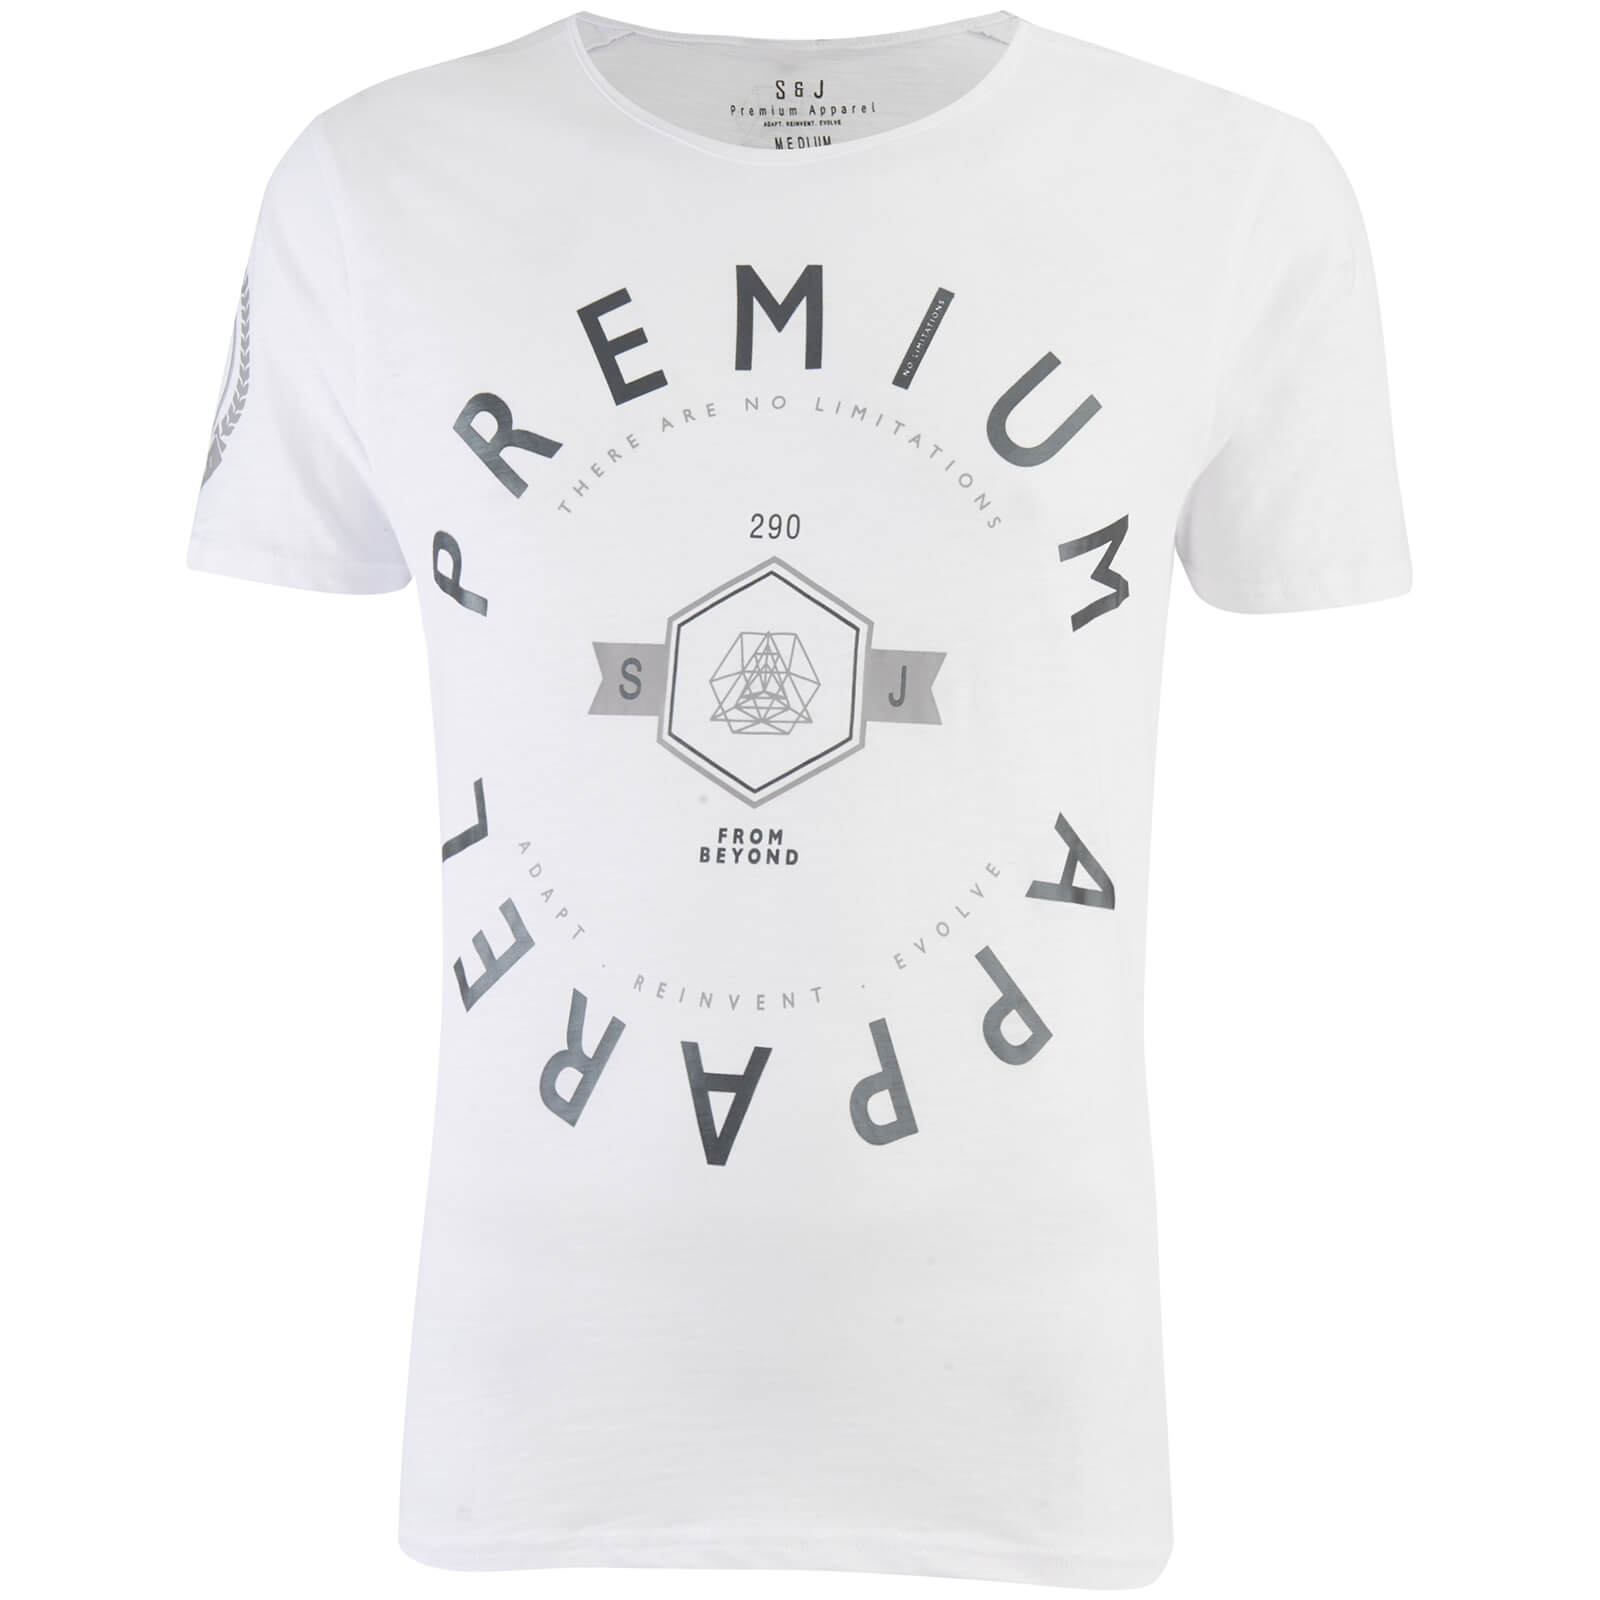 T-Shirt Homme Kinetic Col Rond Smith & Jones -Blanc